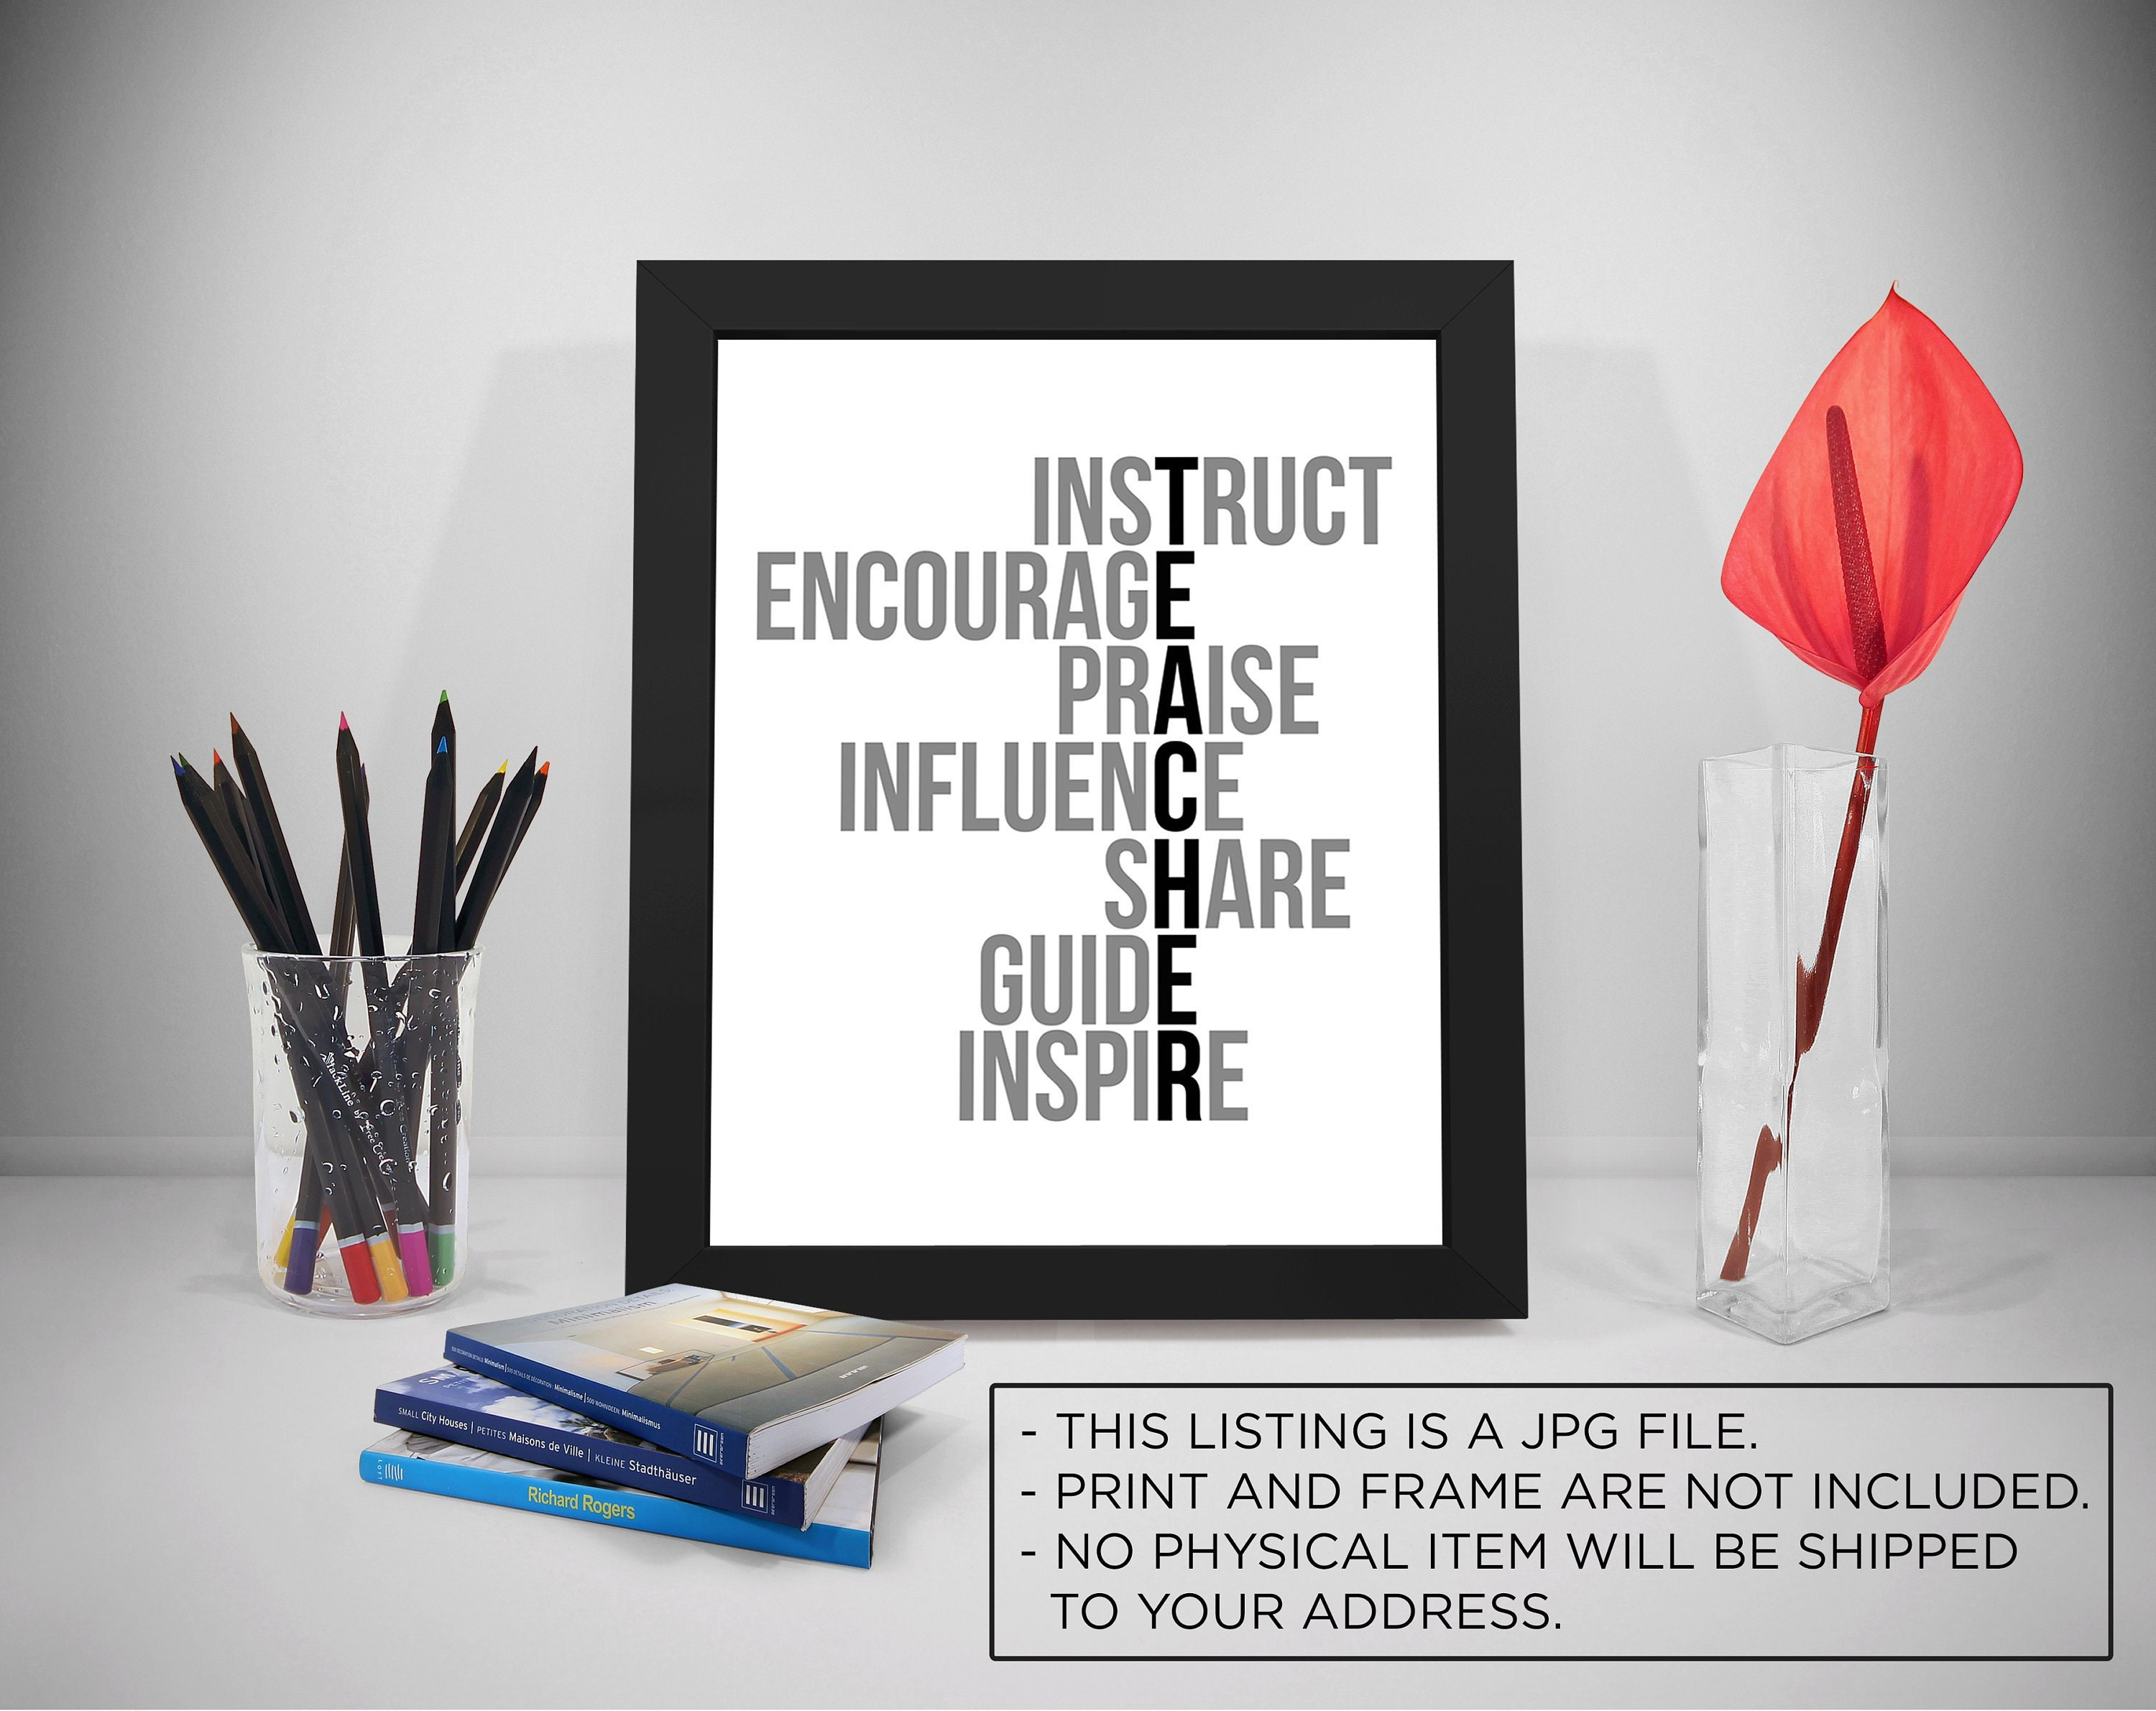 graphic relating to Free Printable Teacher Appreciation Quotes referred to as Instructor Quotation Printable, Instructor Estimates, Motivate Quotation, Praise Estimate, Proportion Quotations, Direct Quotations, Stimulate Quotations, Have an effect on, Instructor